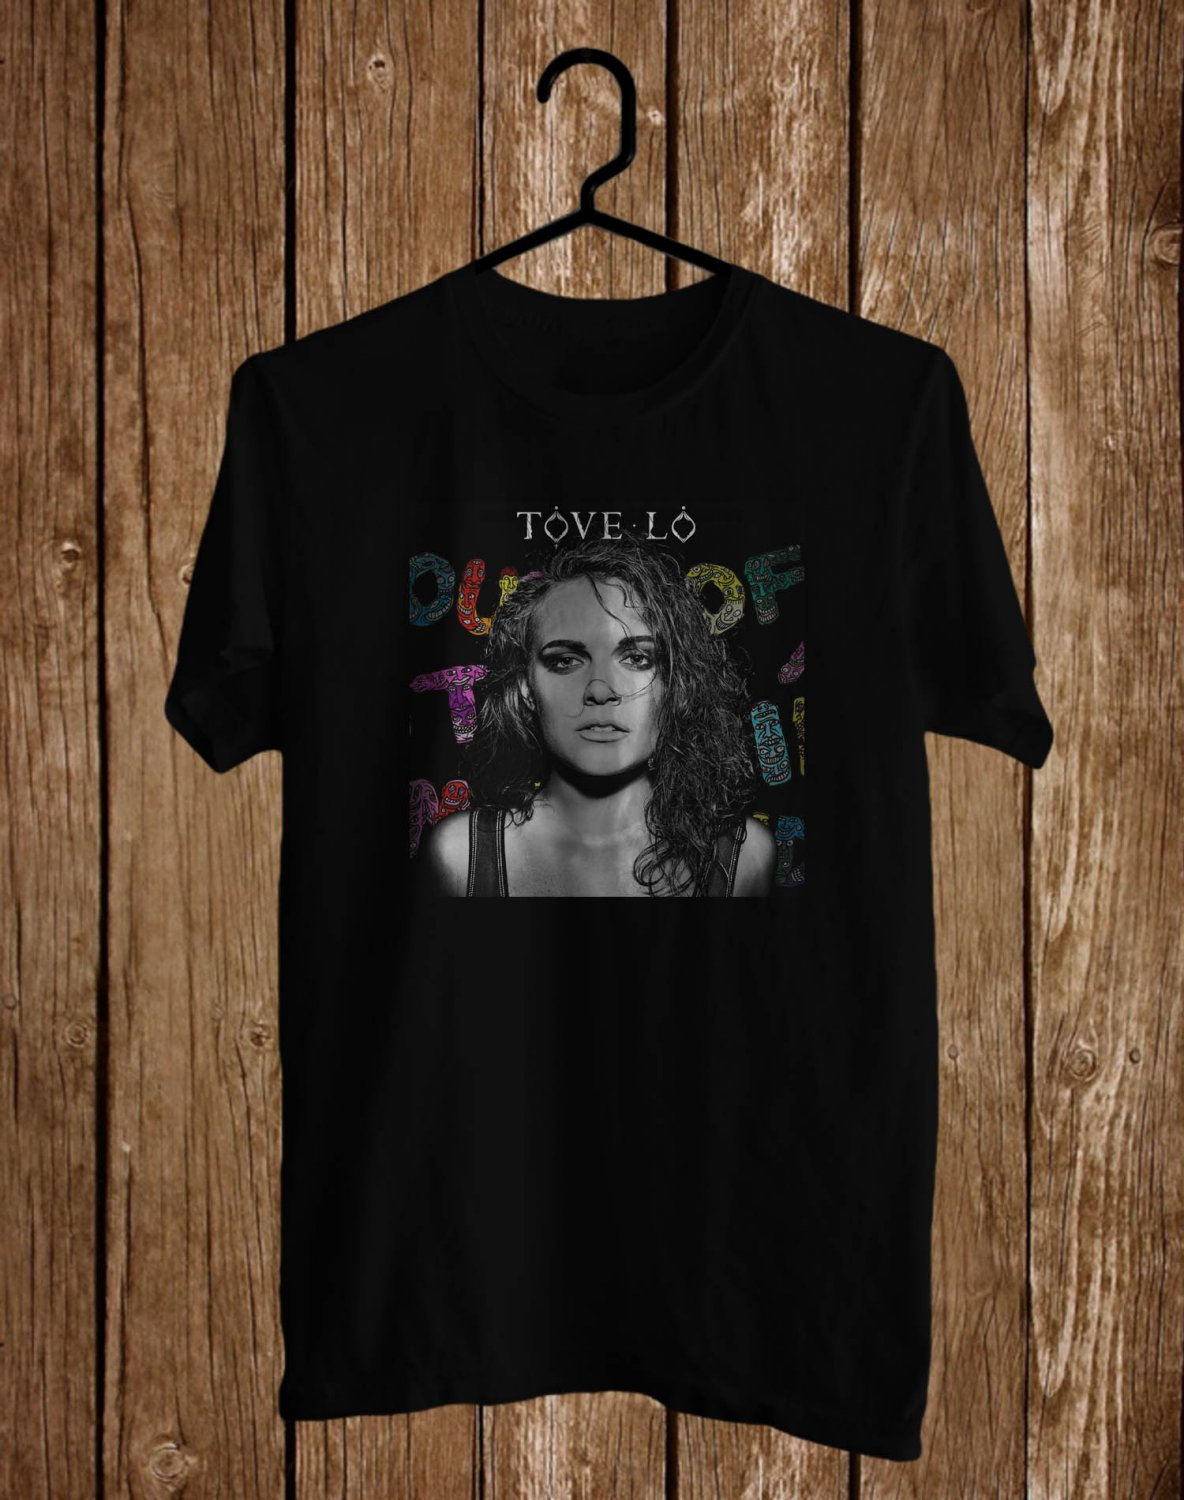 Tove Lo Lady Wood 2017 Black Tee's Front Side by Complexart